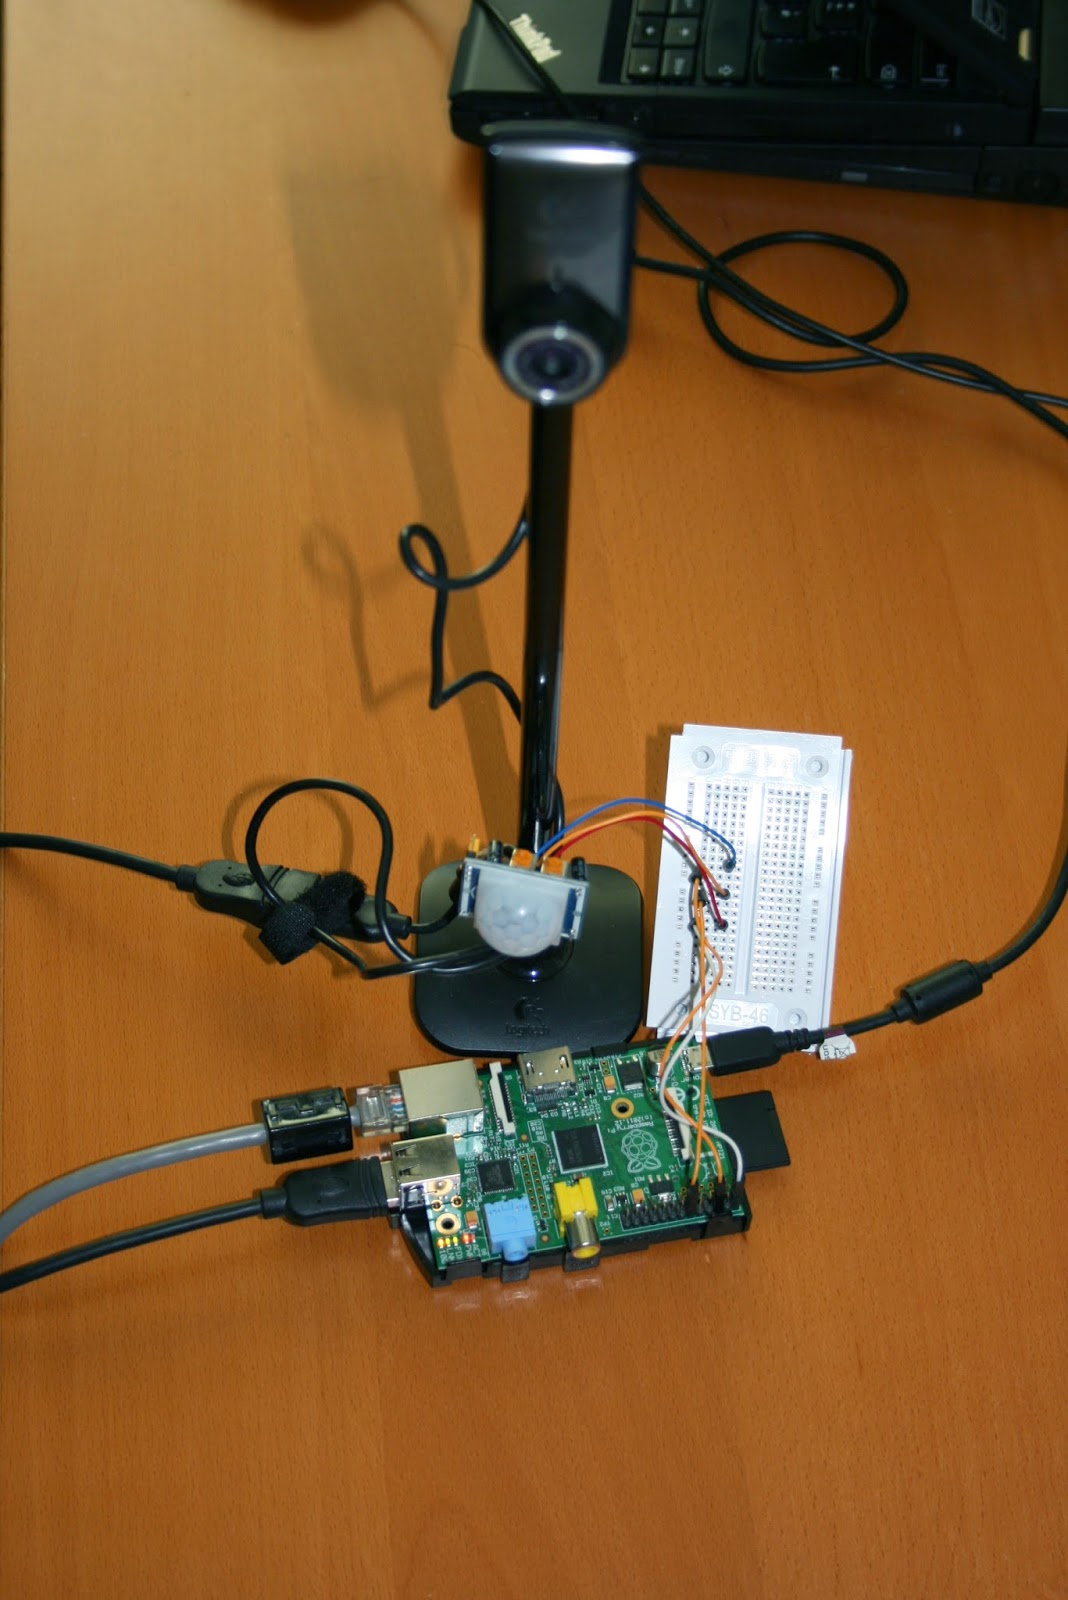 Data Henrik: Catching the mean chocolate thief with Raspberry Pi